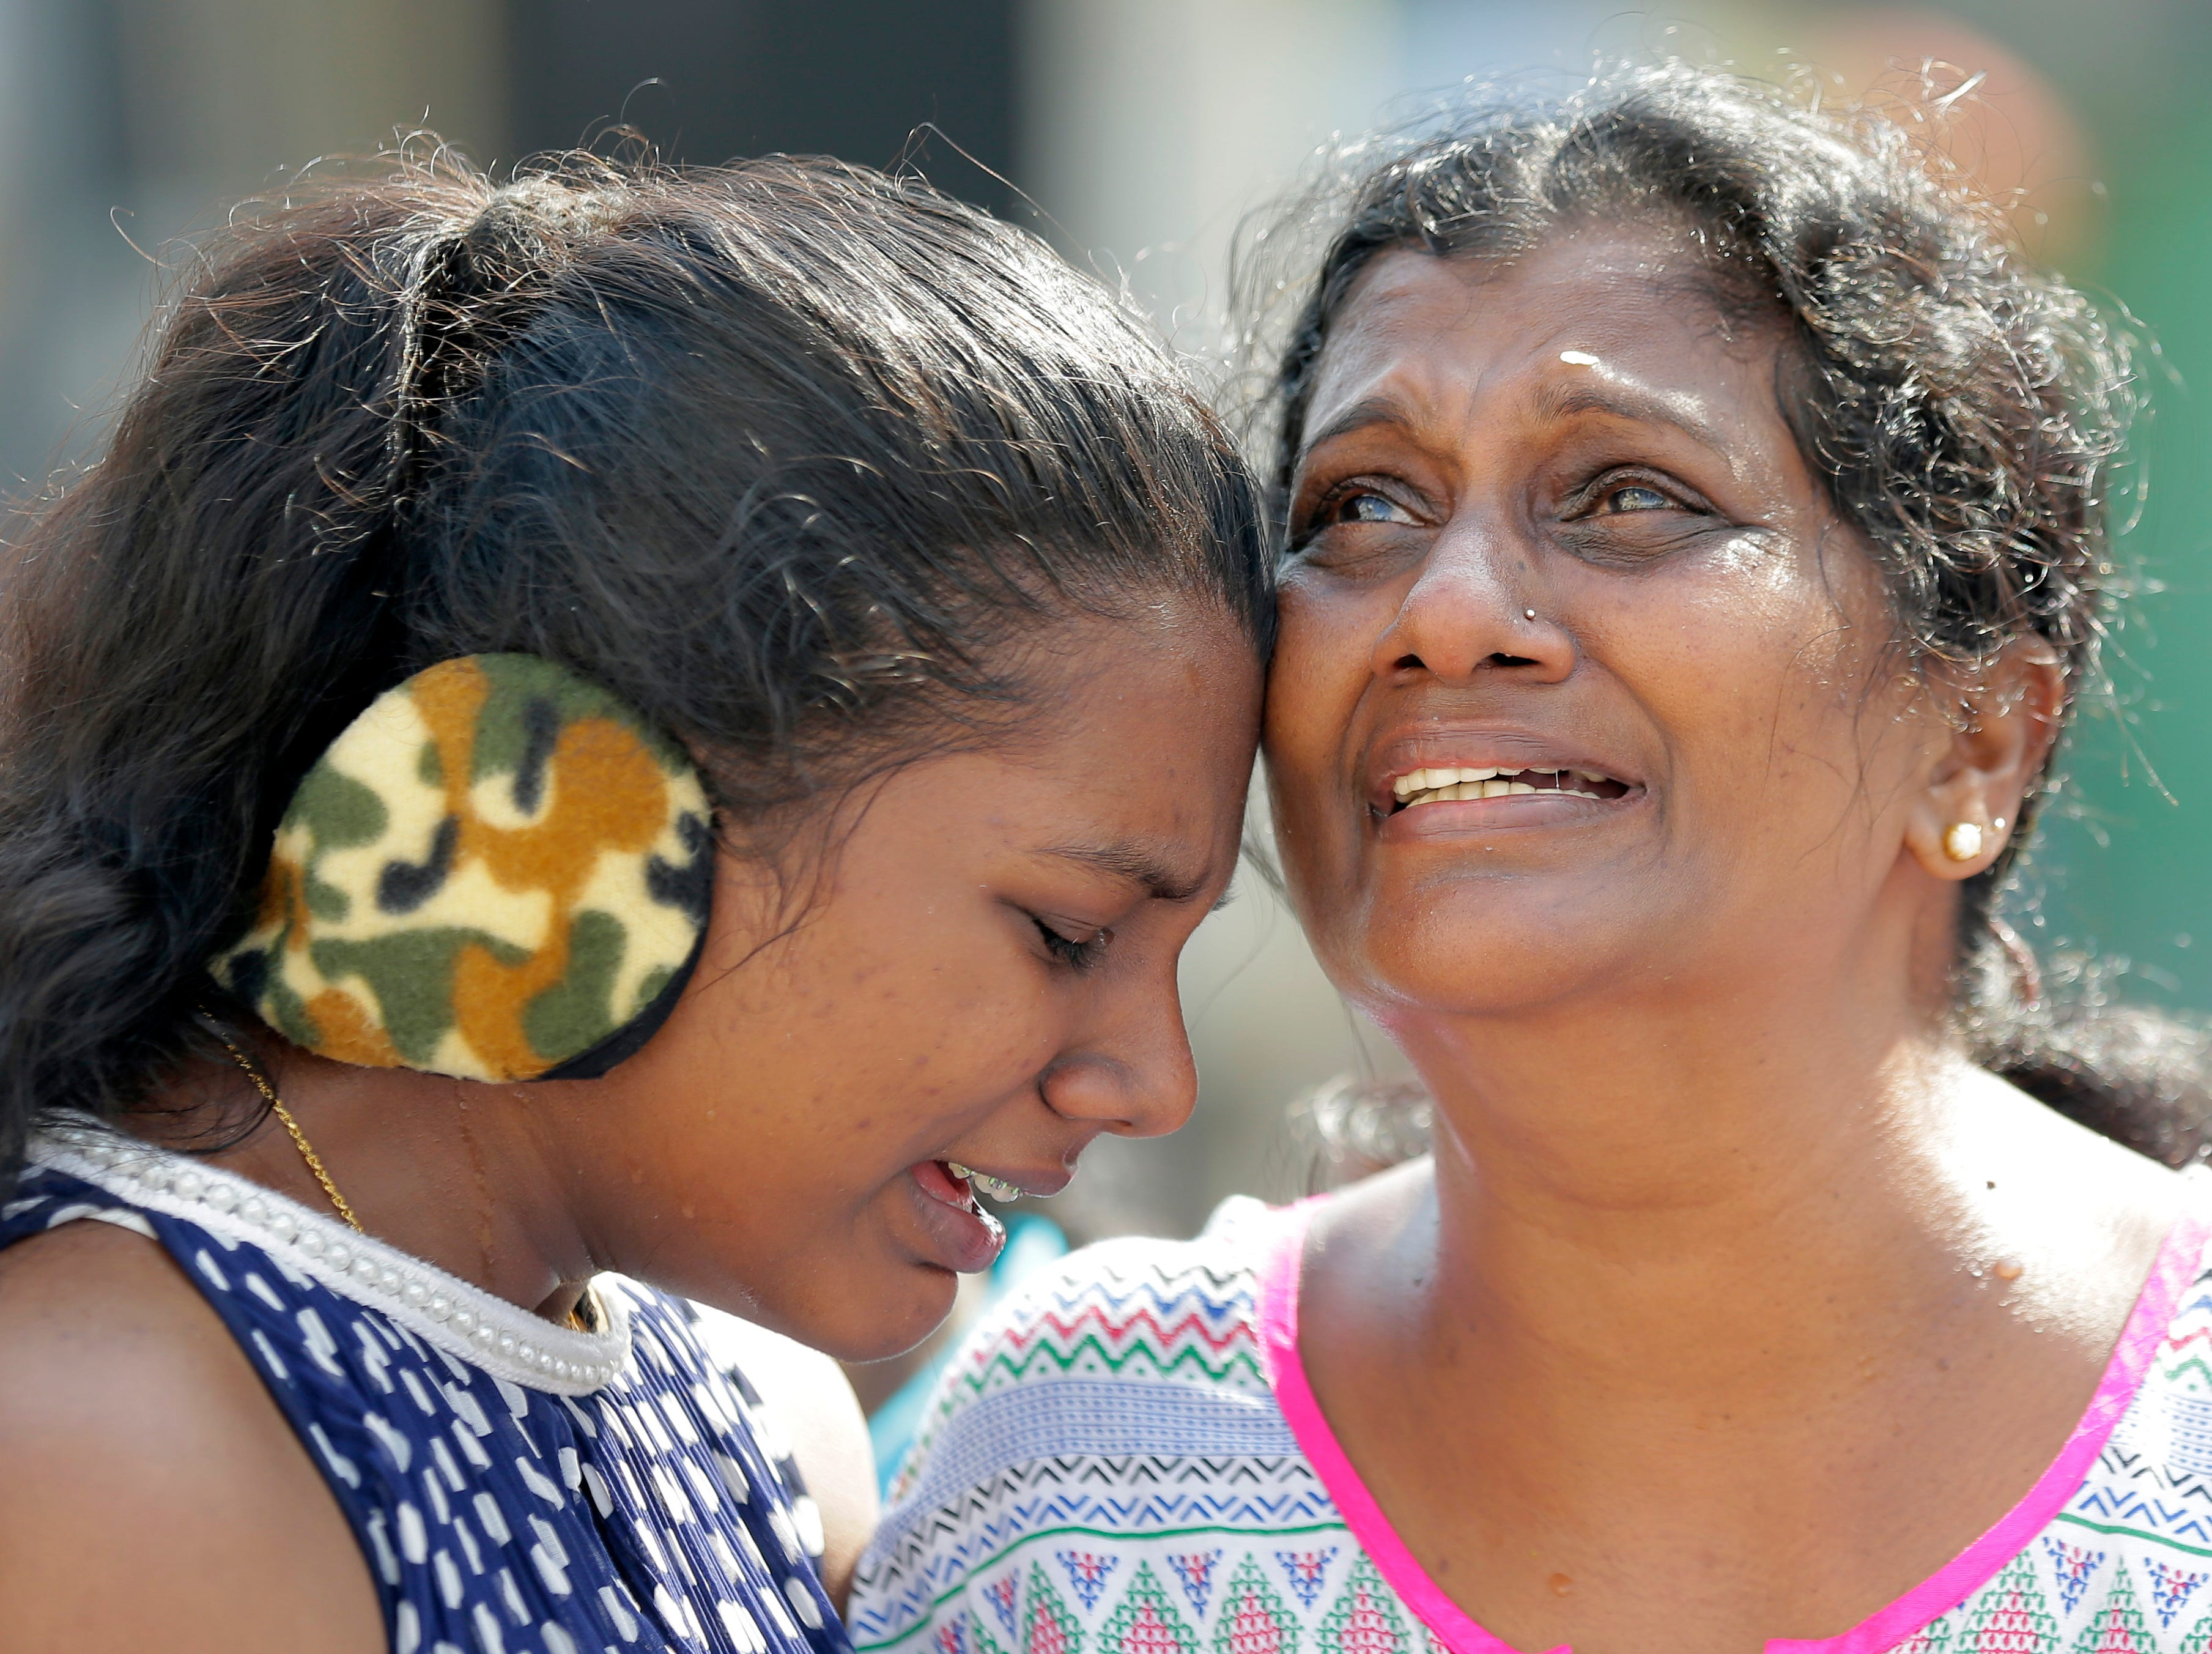 Sri Lankan Roman Catholic devotees cry as they pray outside the St. Anthony's church, one of the sites of Easter Sunday attacks in Colombo, Sri Lanka, Tuesday, May 21, 2019. More than 250 people were killed in coordinated suicide bomb attacks at three churches and three tourist hotels that were claimed by the Islamic State group and carried out by a local radicalized Muslim group.